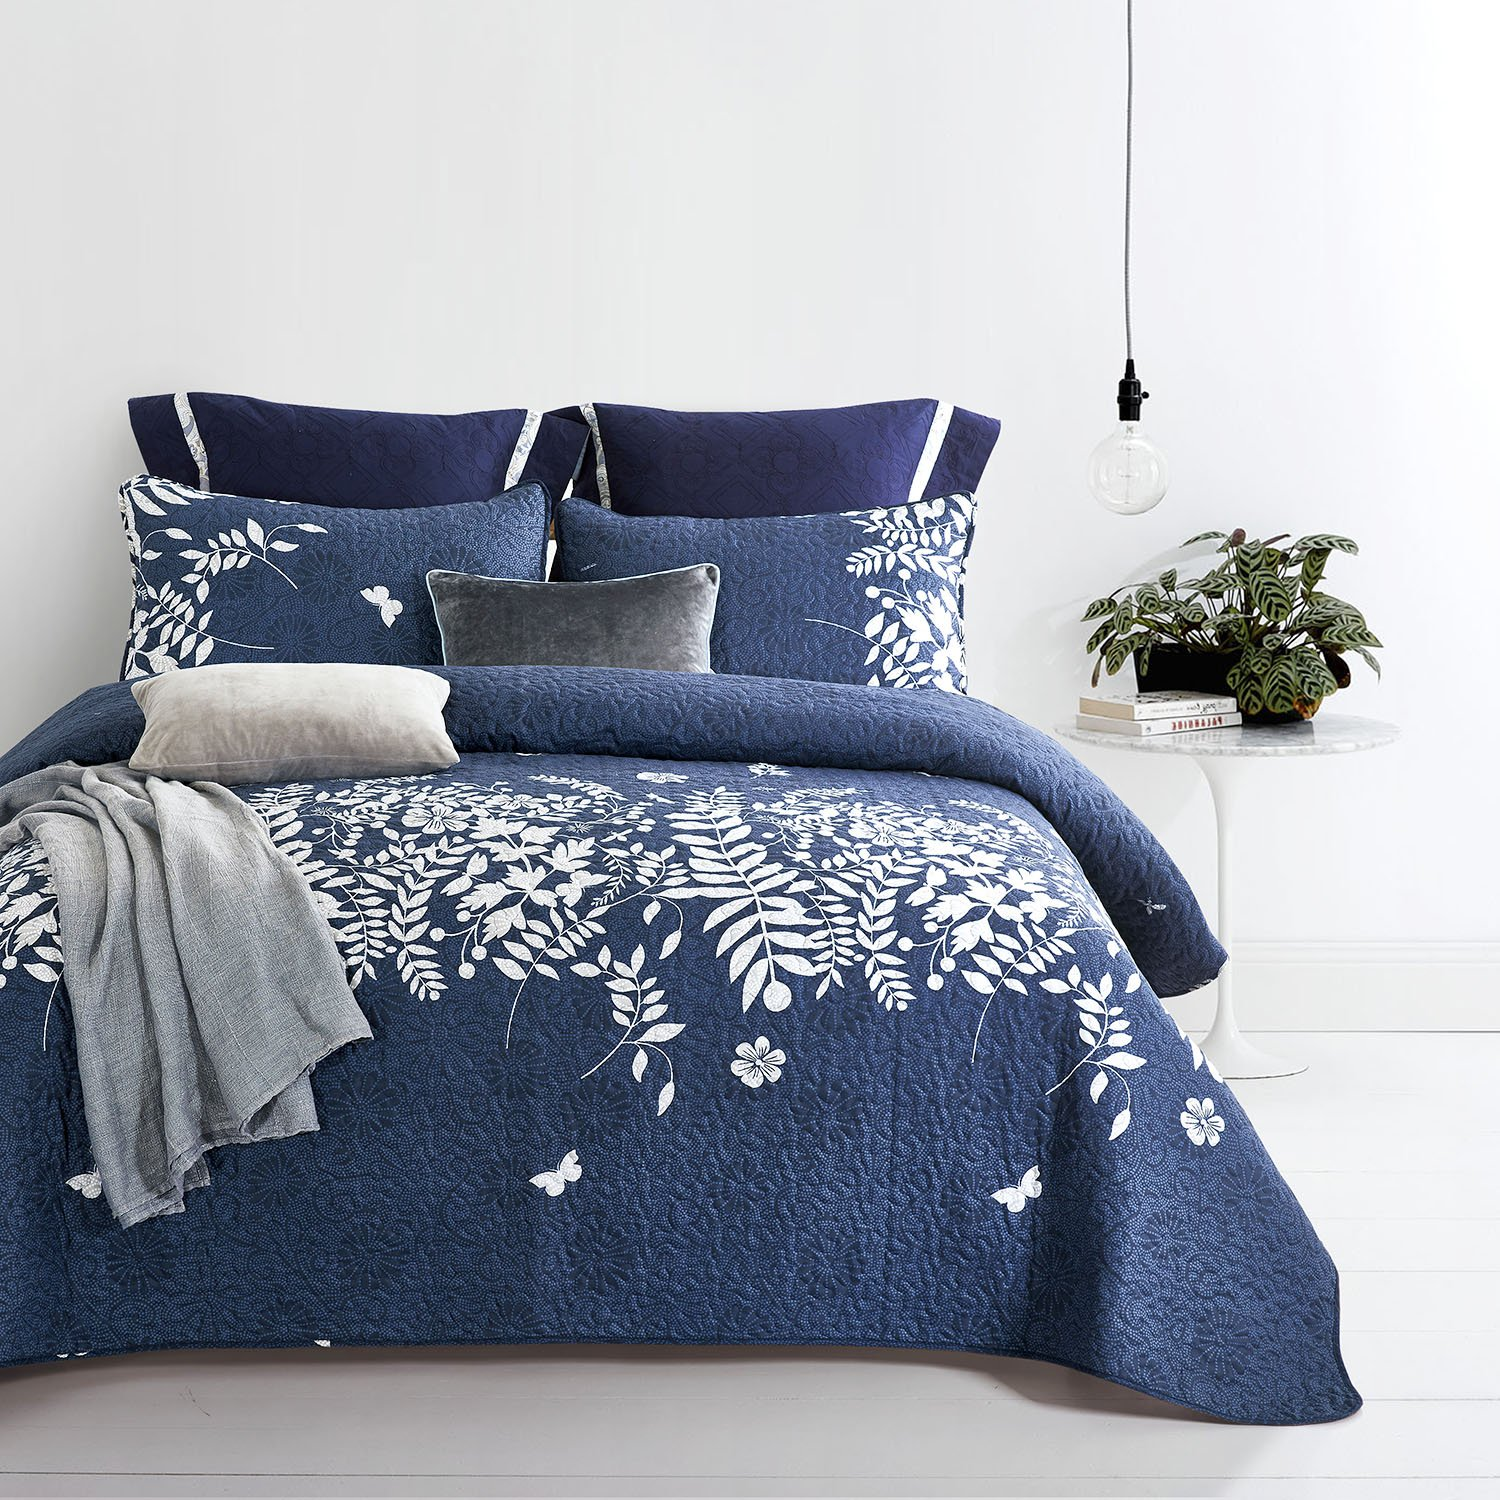 Wake In Cloud - Navy Blue Quilt Set, Gray Grey Floral Flowers Tree Leaves Modern Pattern Printed, Soft Microfiber Bedspread Coverlet Bedding (3pcs, King Size) by Wake In Cloud (Image #3)